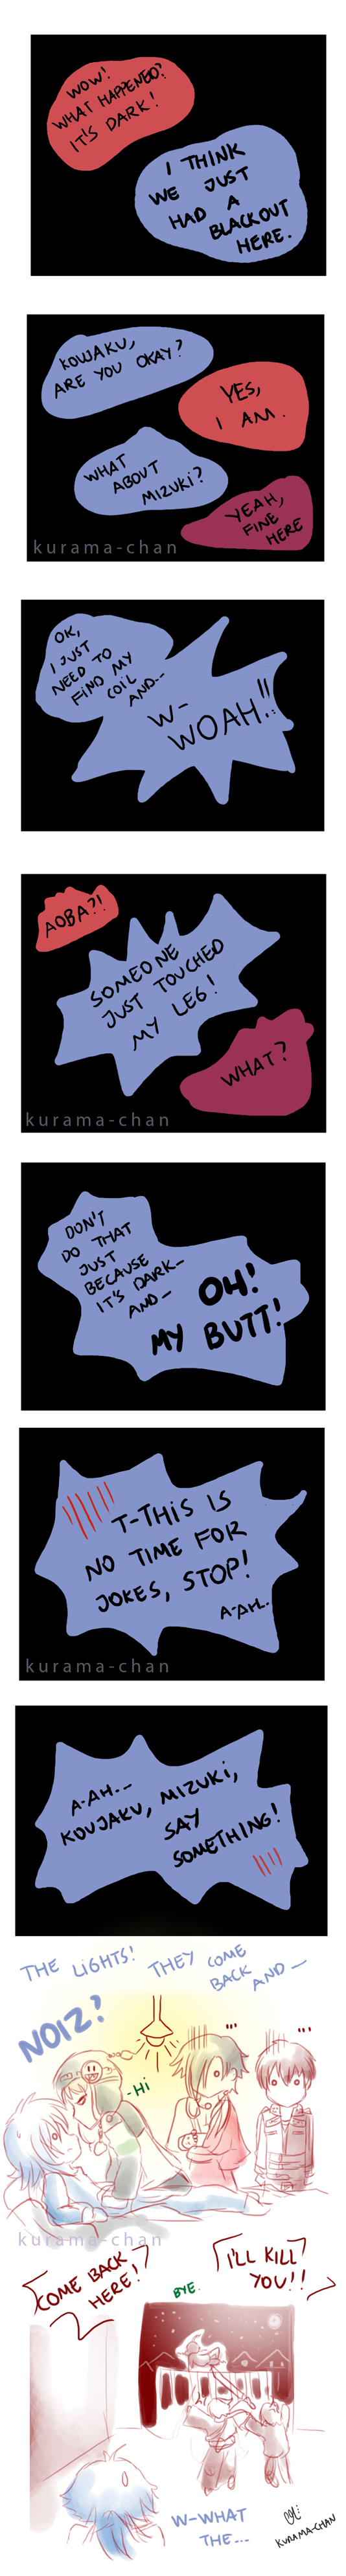 -- DMMD comic: When the lights are out -- by Kurama-chan